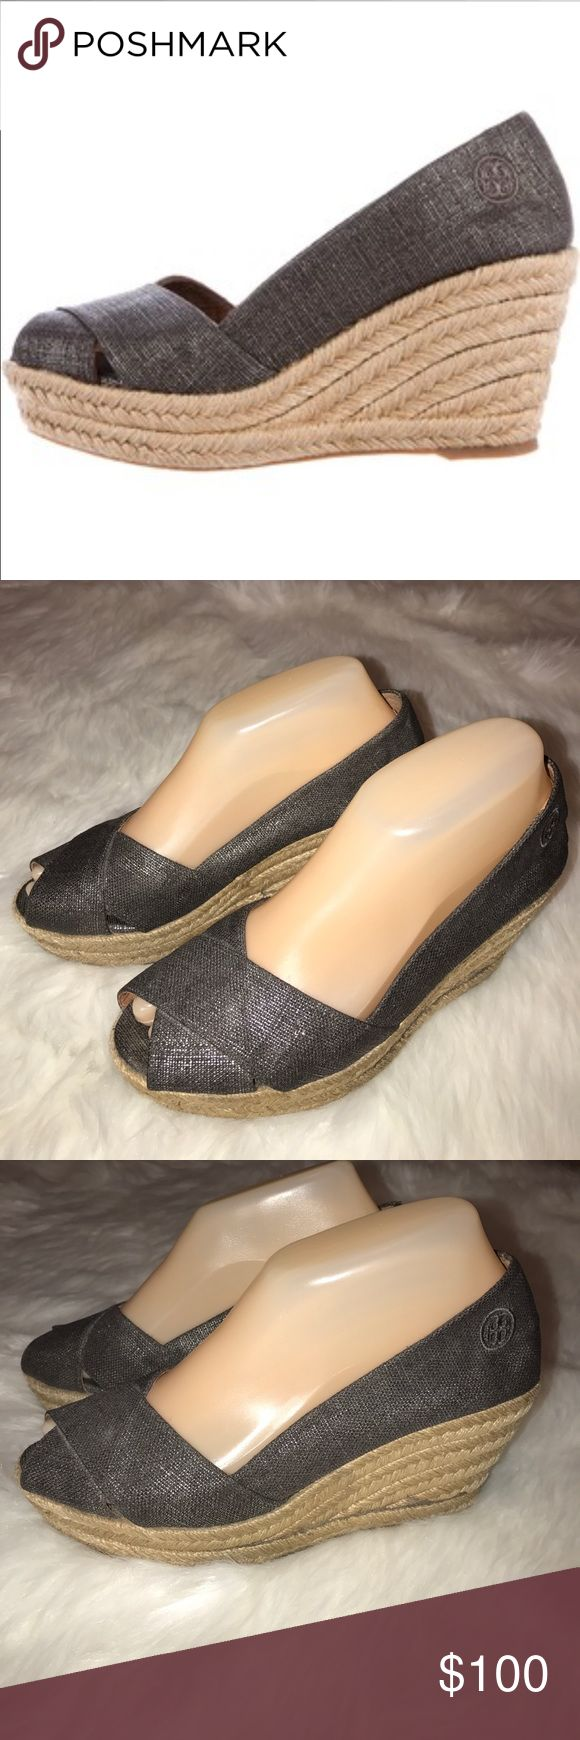 Tory Burch Metallic Espadrilles Peak Toes Wedges 8 • Gently used • Size 8 • One small area on the inside of the shoe that's frayed...  Shown in last photo • Tory Burch Shoes Wedges